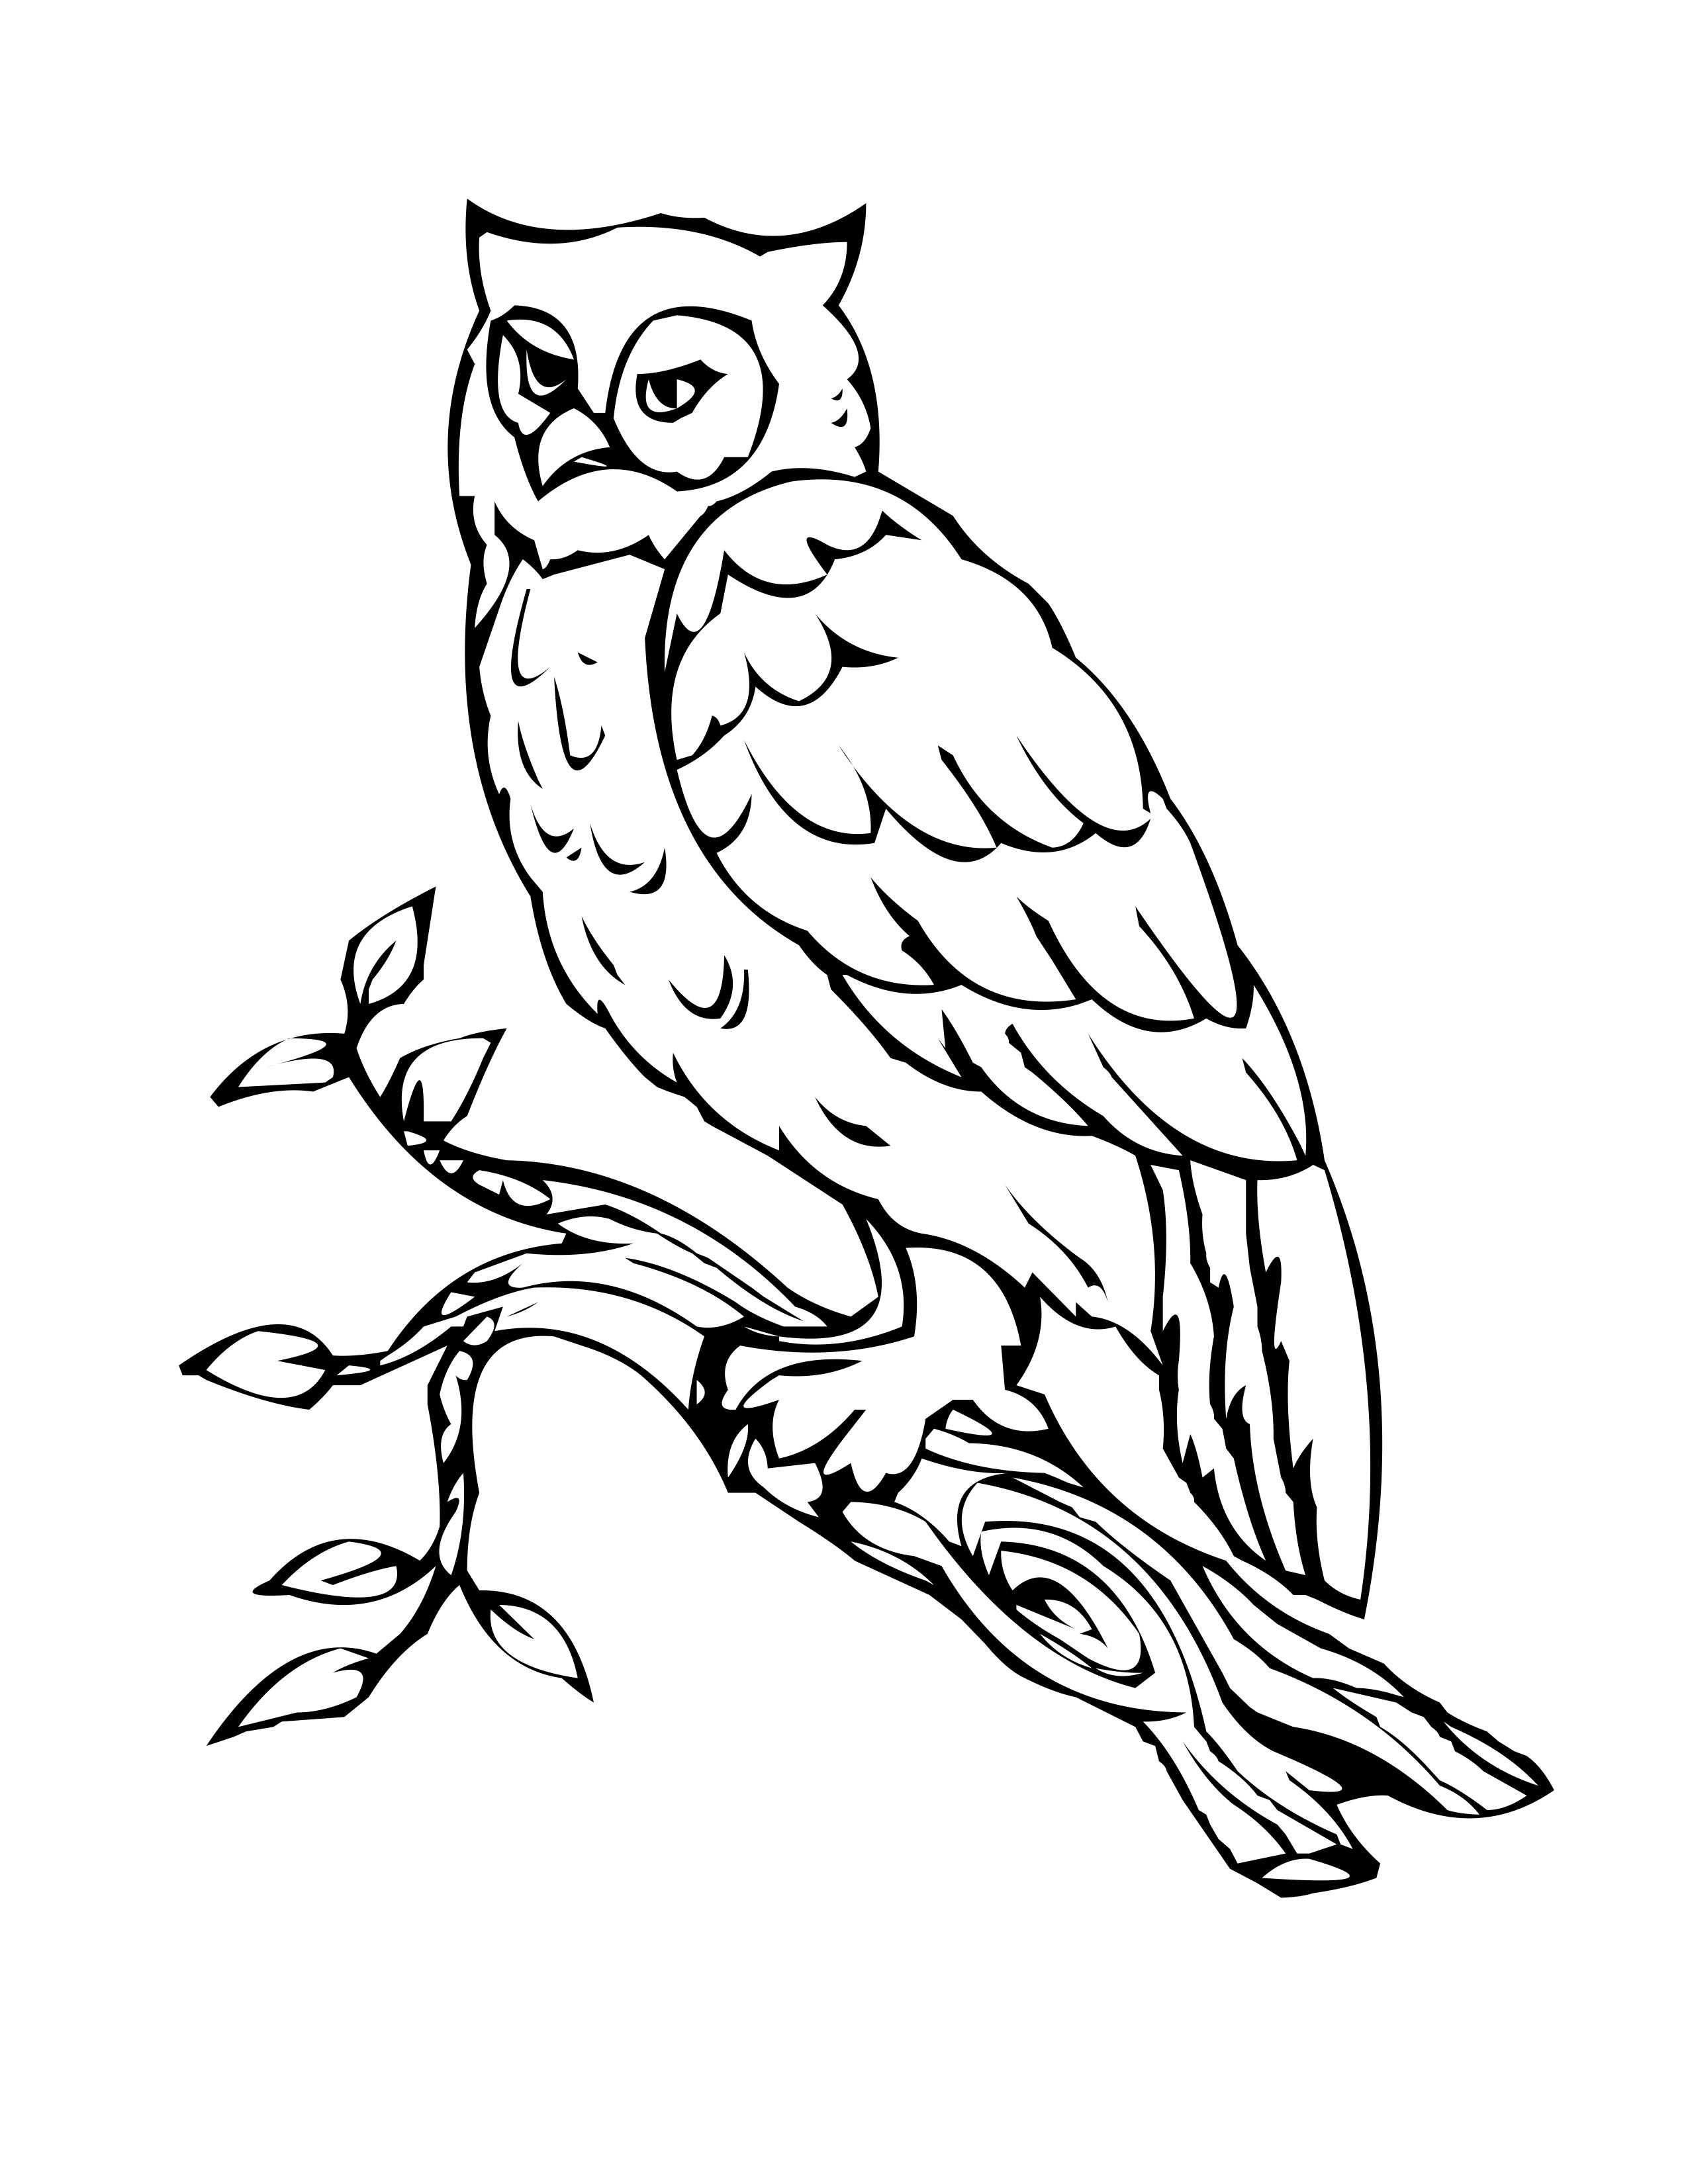 Coloring pages printable owls - Free Printable Owl Coloring Pages